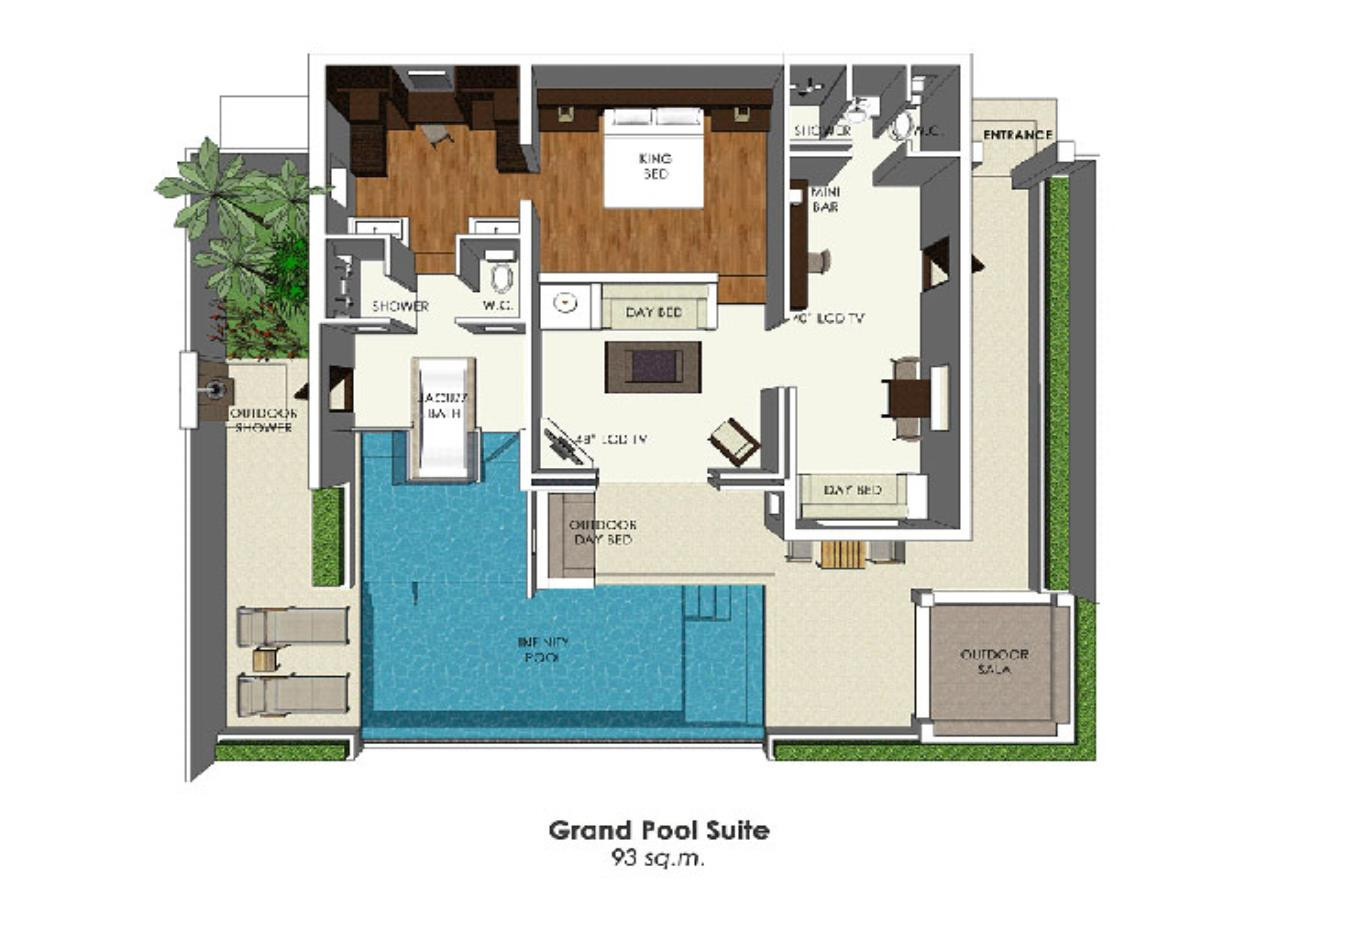 Grand Pool Suite floorplan